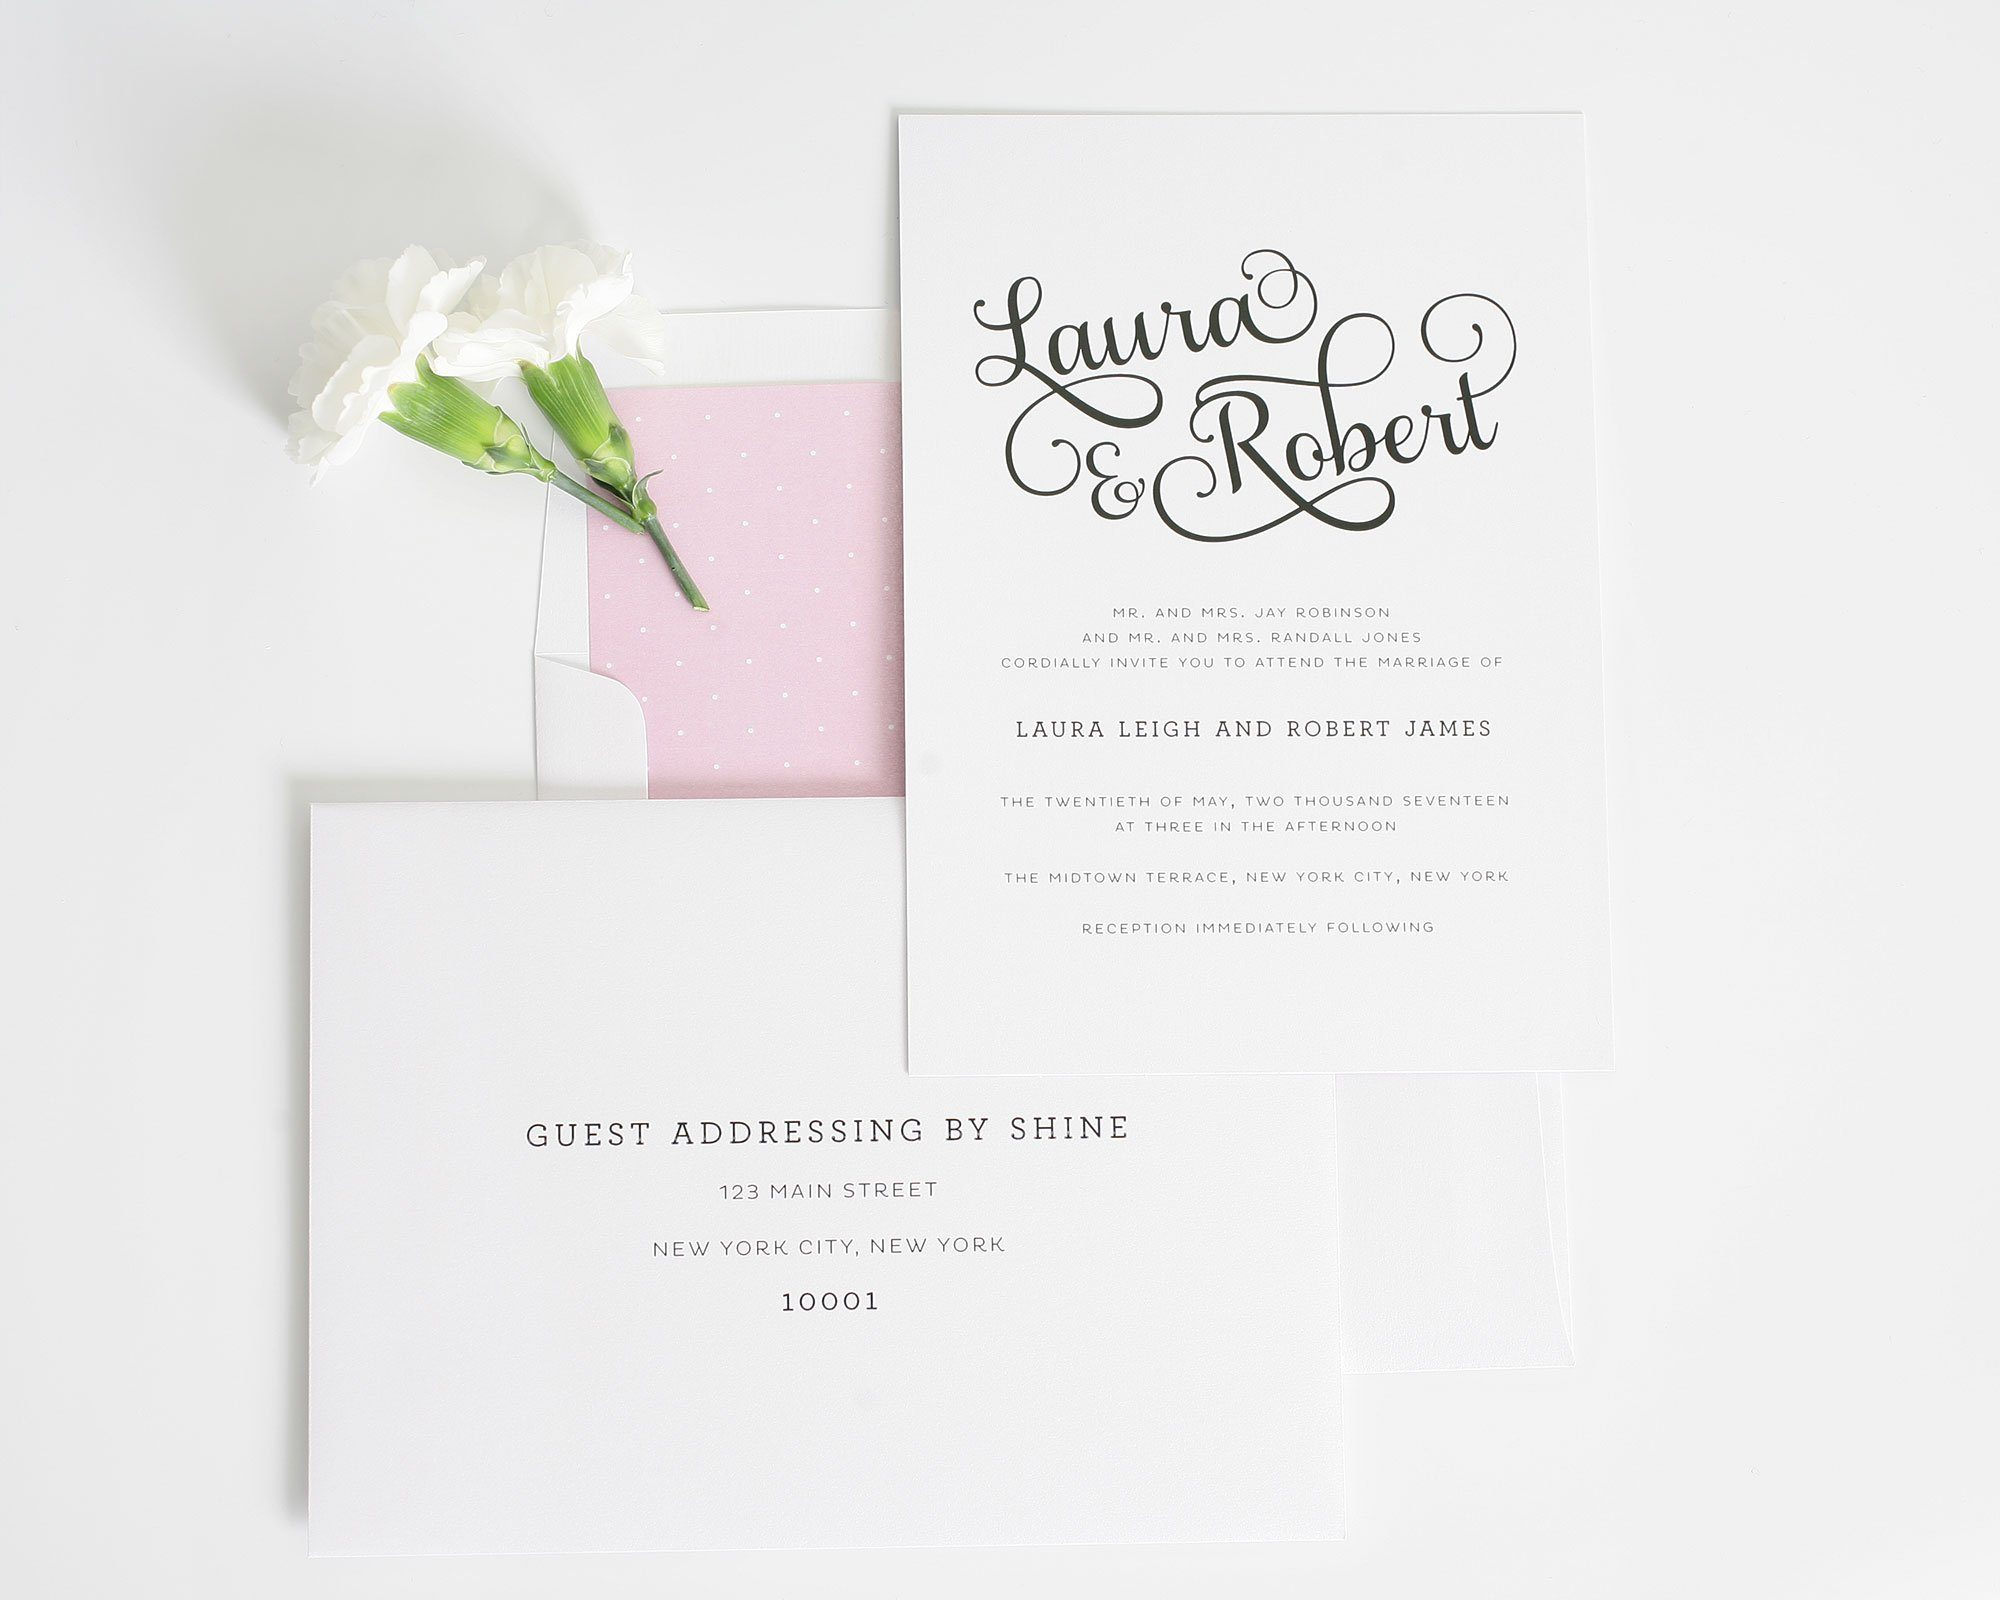 Sweet and romantic wedding invitations with large script wedding romantic wedding invitations pink wedding invitations monicamarmolfo Image collections